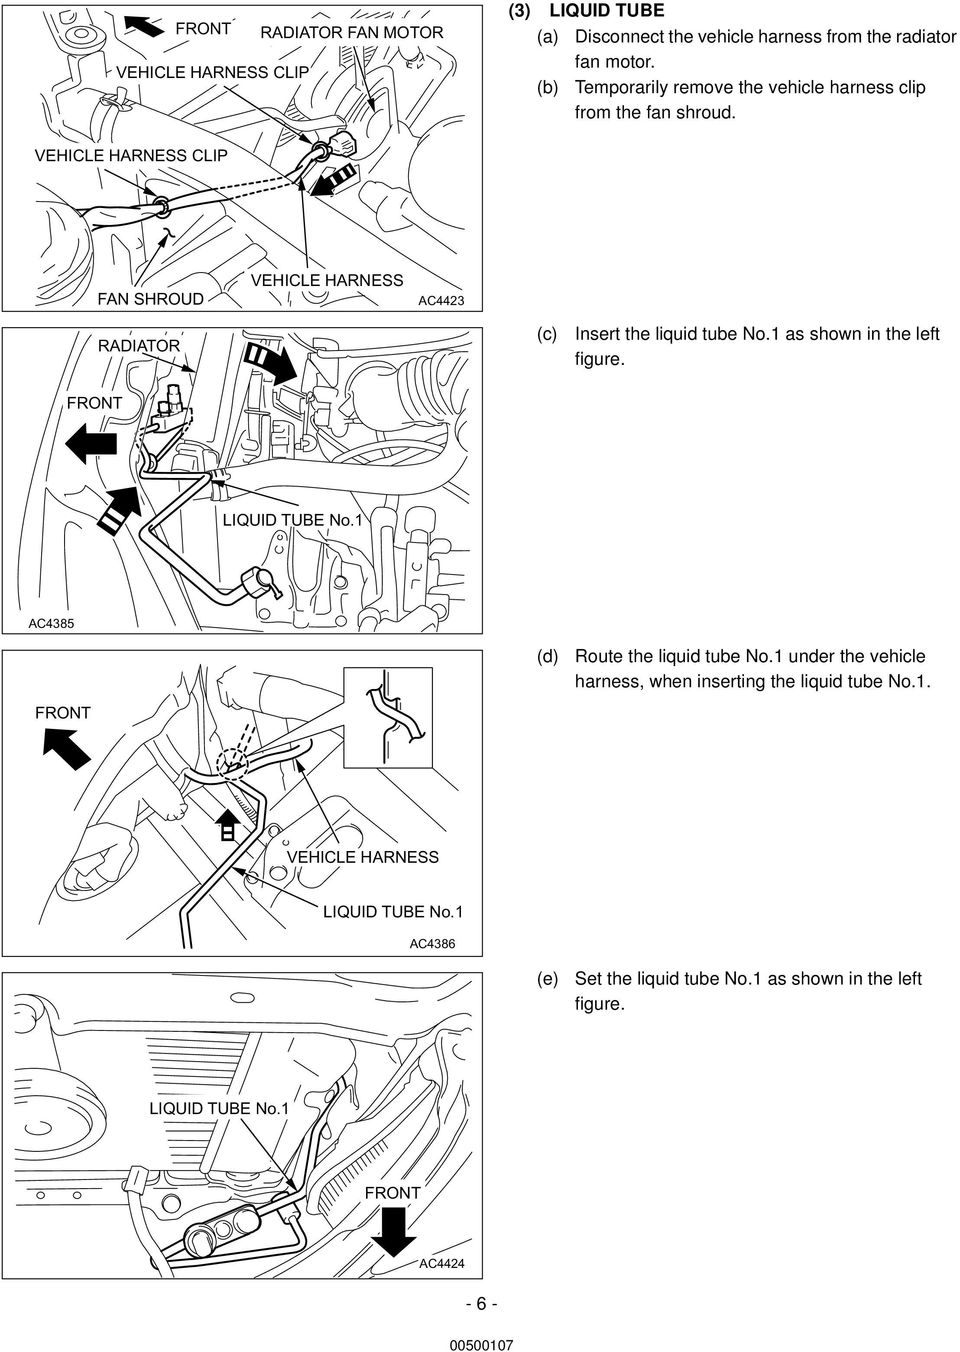 VEHICLE HARNESS CLIP FAN SHROUD VEHICLE HARNESS AC4423 RADIATOR (c) Insert the liquid tube No.1 as shown in the left figure. LIQUID TUBE No.